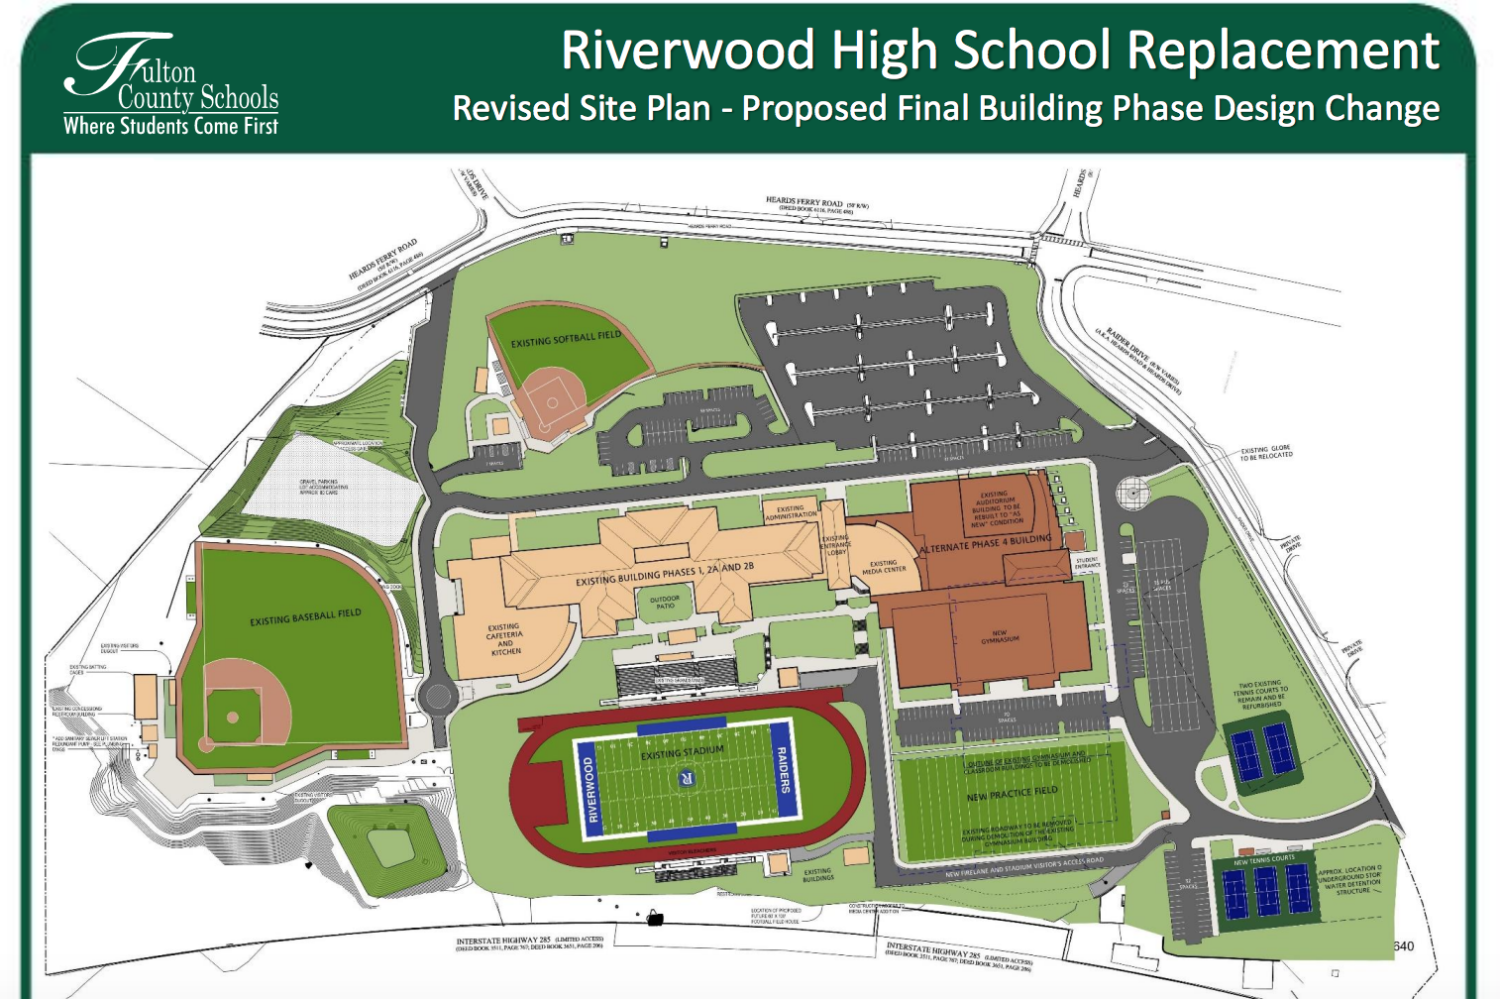 Riverwood school building may be reused, renovated to reduce costs